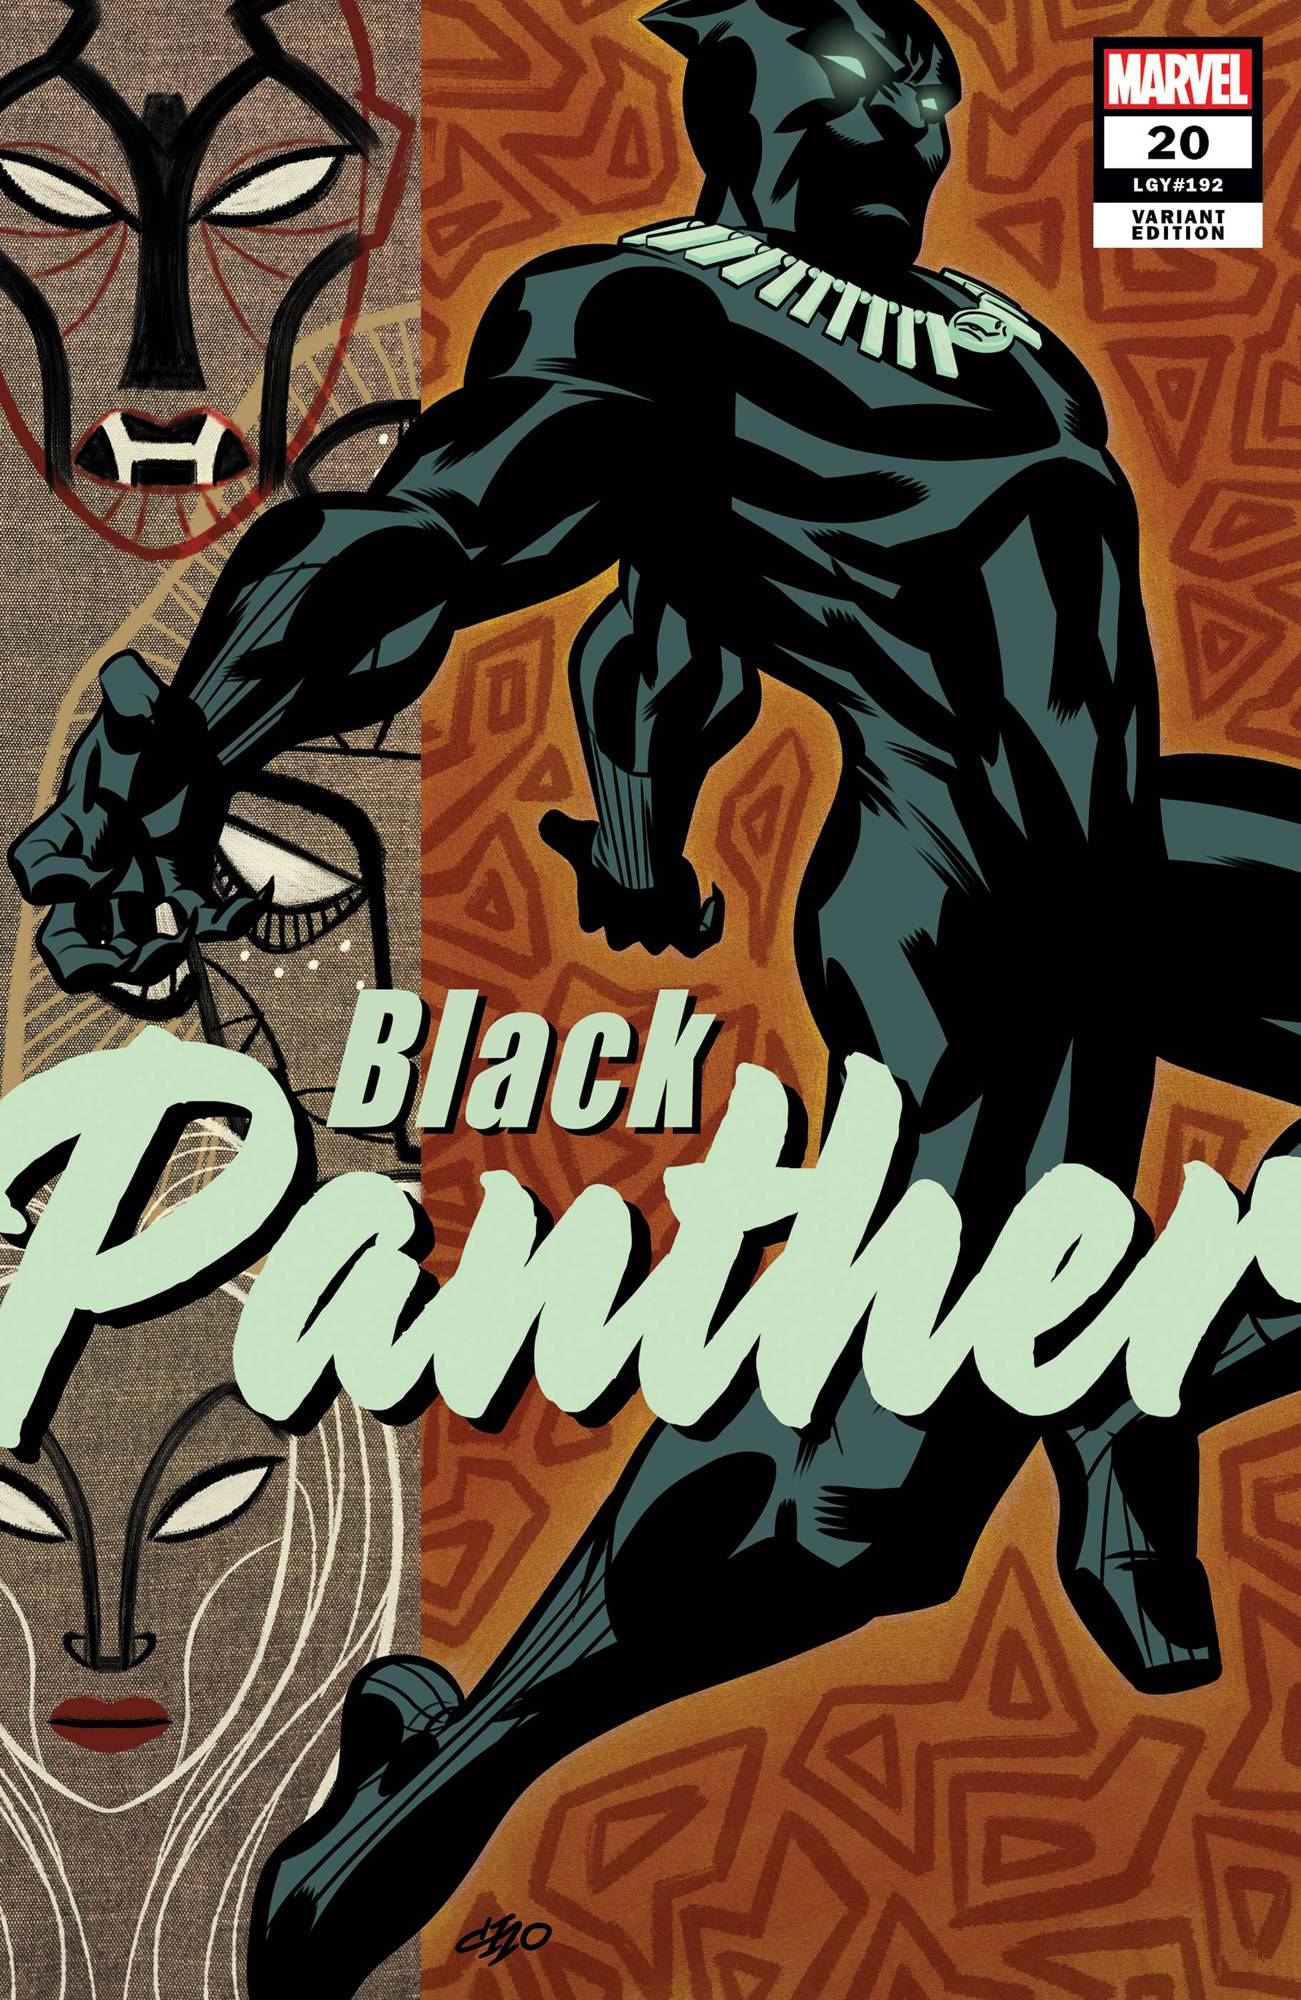 BLACK PANTHER #20 MICHAEL CHO VAR